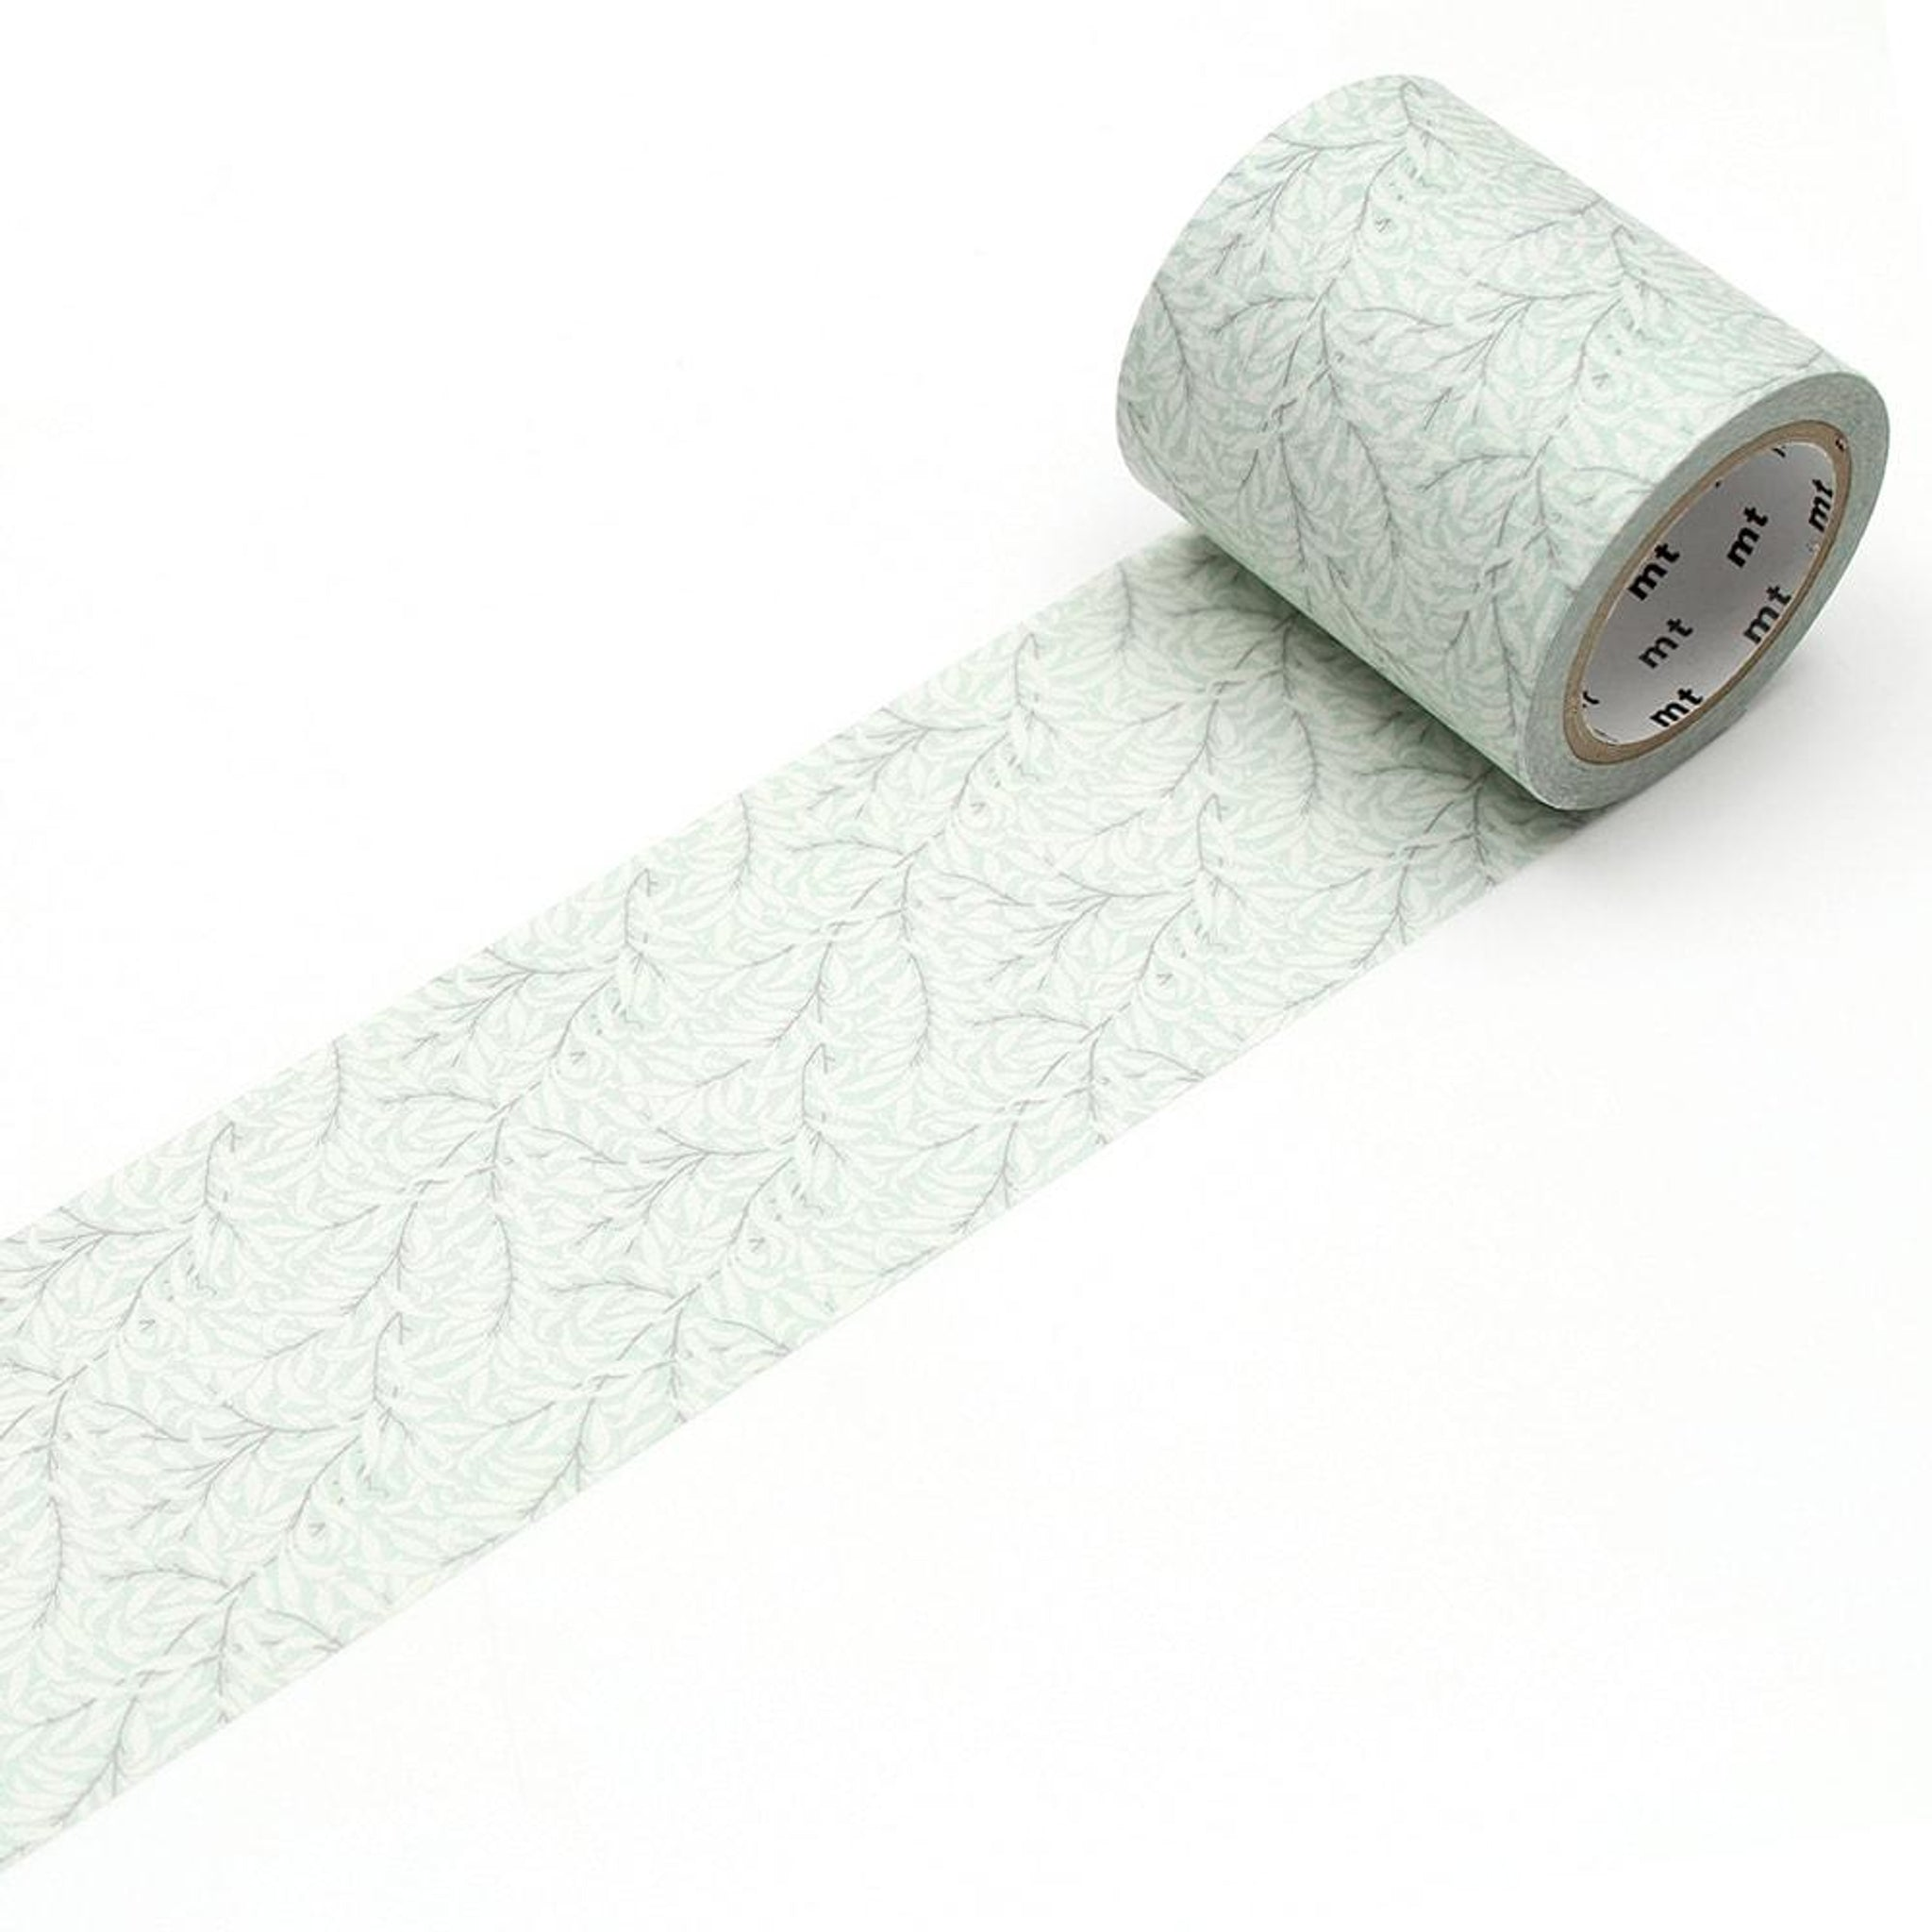 MT x William Morris Washi Tape Pure Willow Bough Eggshell/Chalk